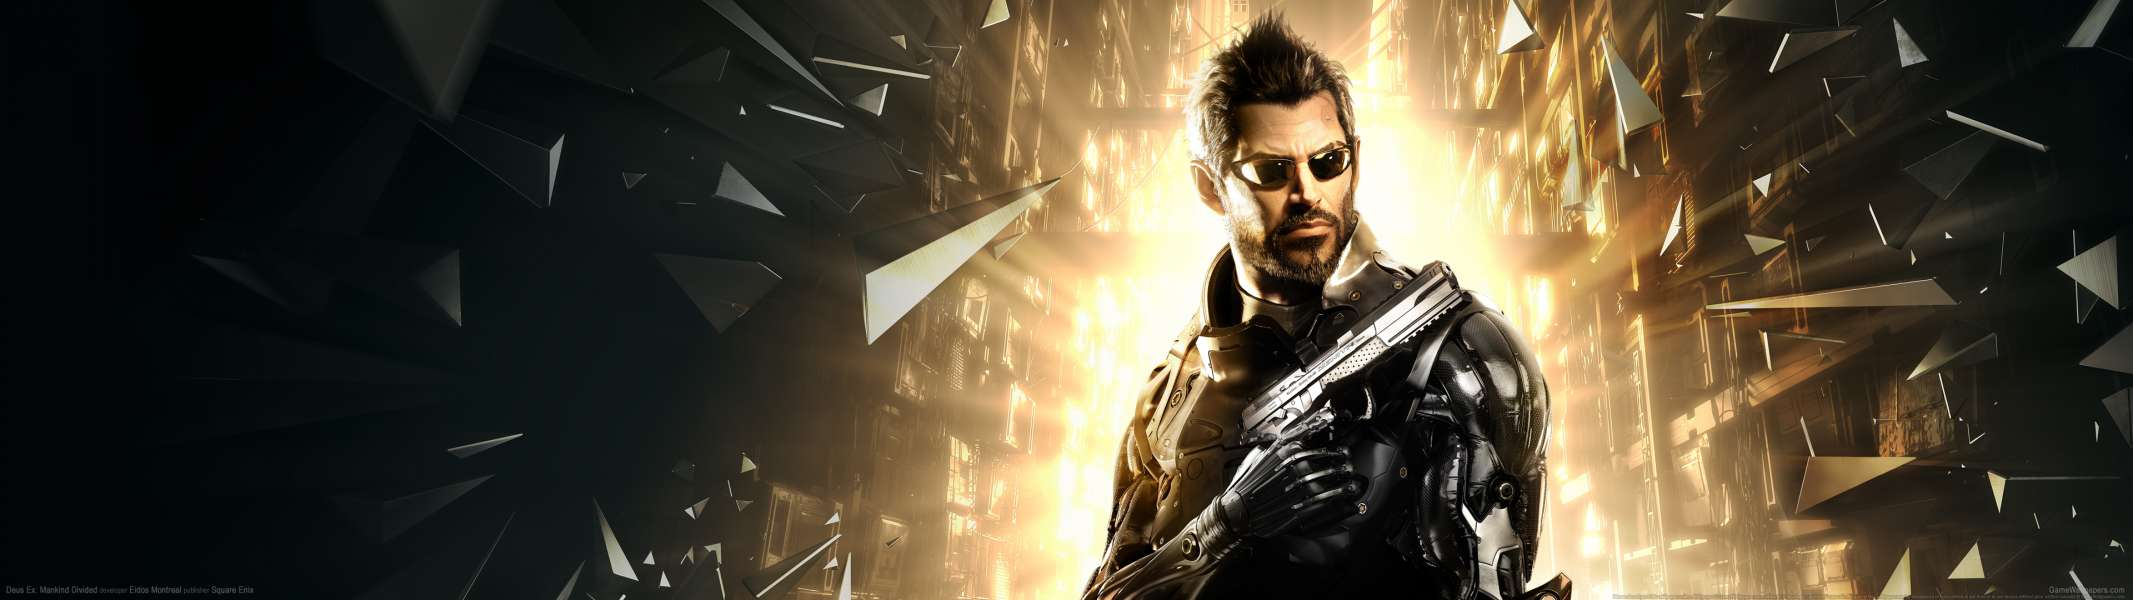 Deus Ex: Mankind Divided dual screen fondo de escritorio